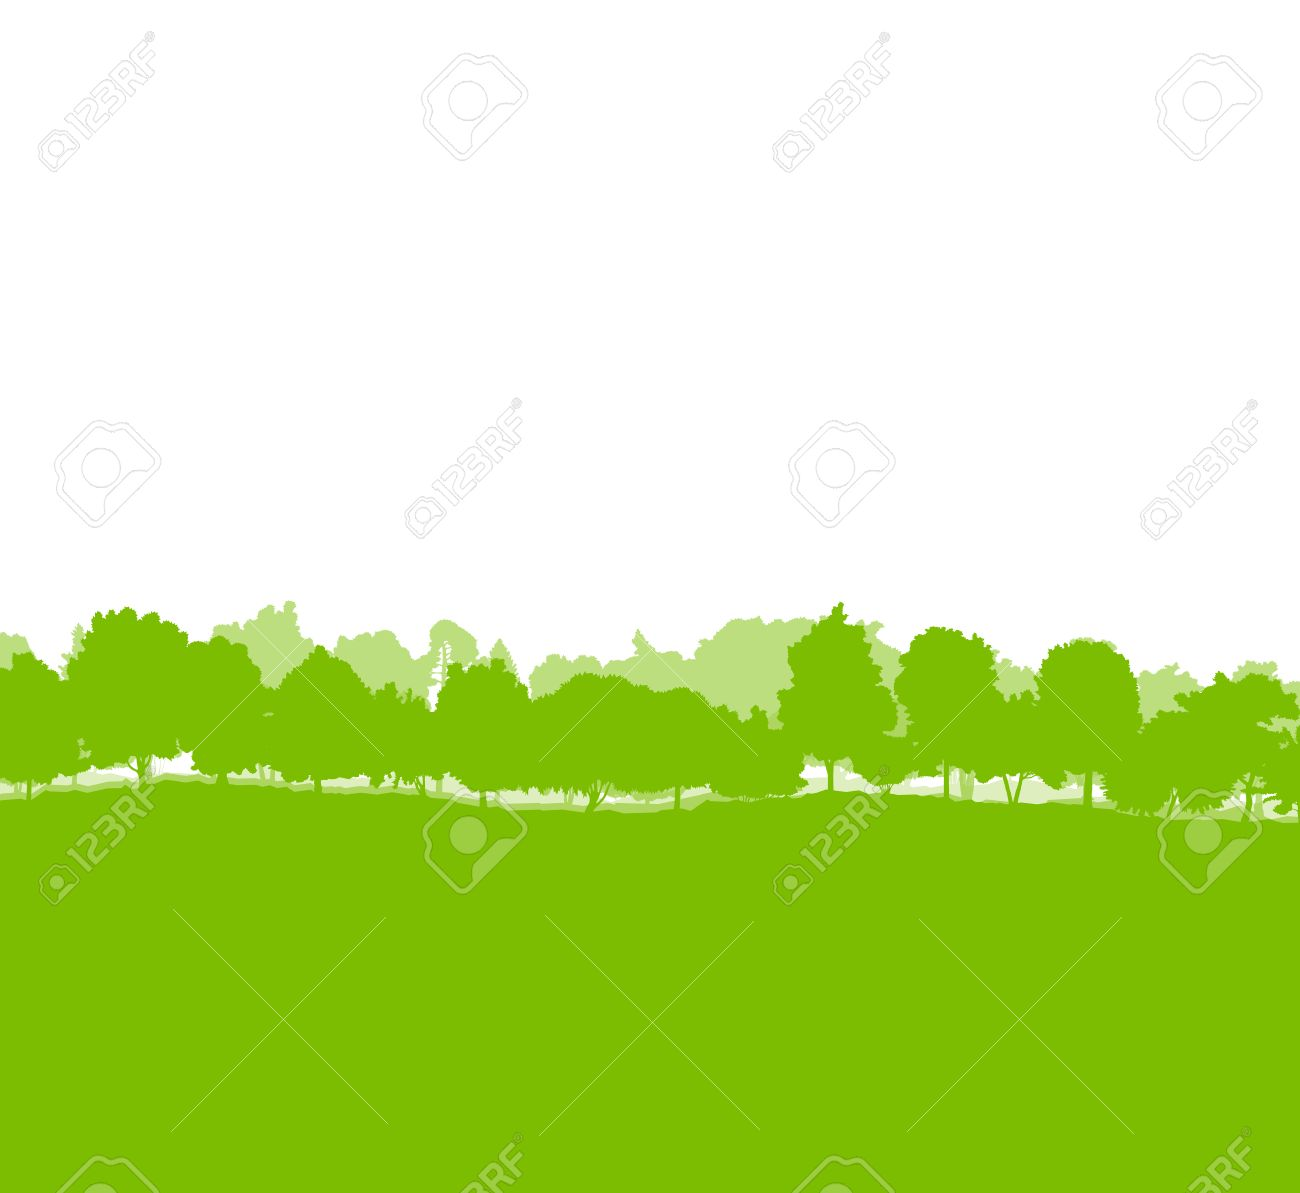 Forest trees silhouettes landscape illustration background ecology vector concept - 37764952